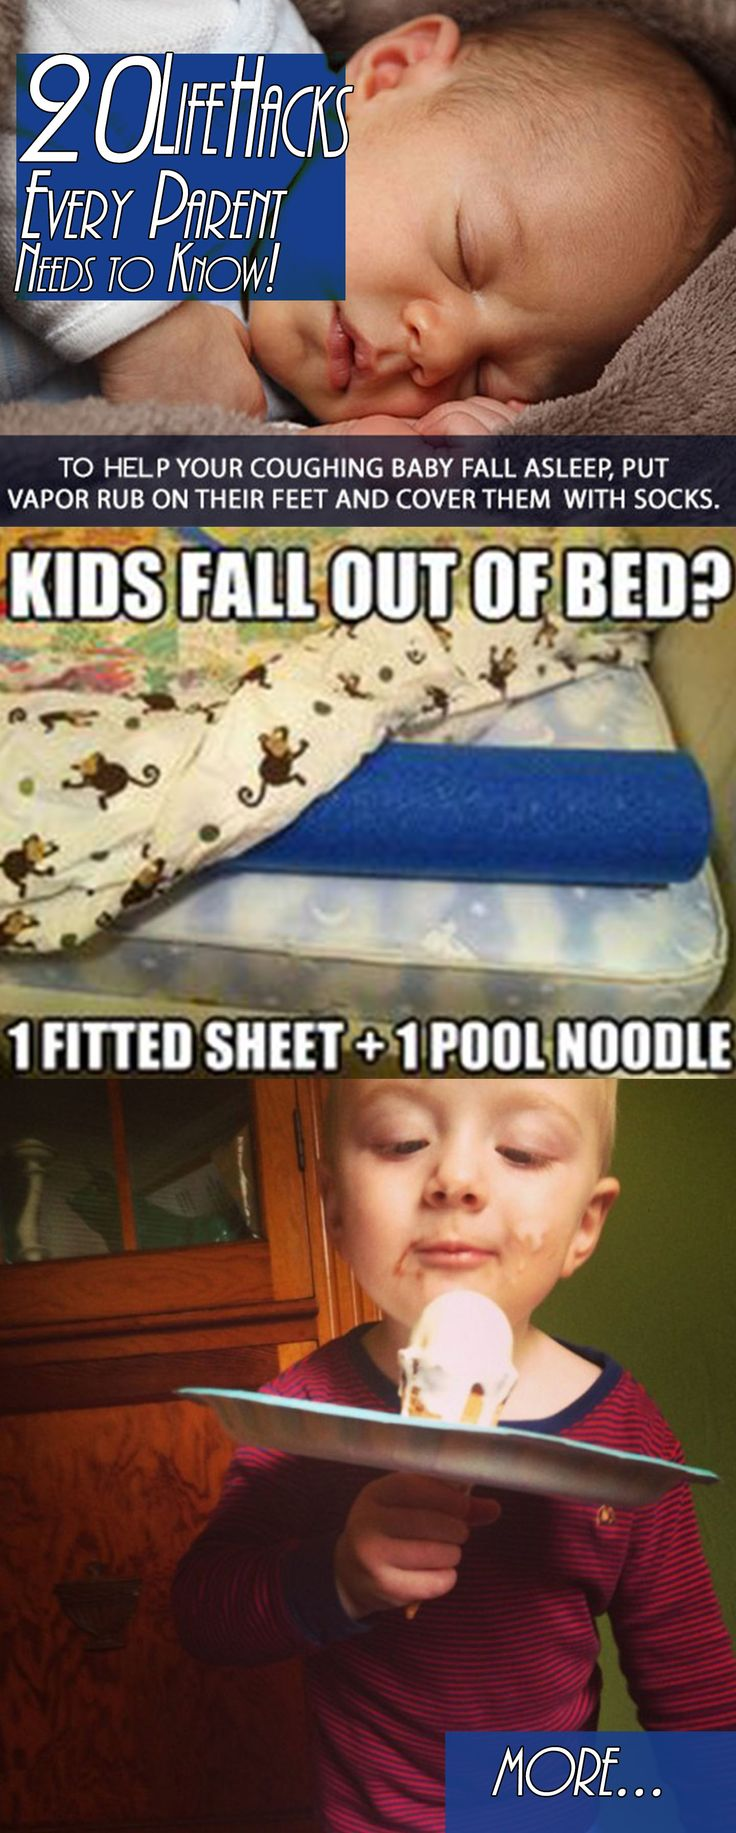 20 Life Hacks Every Parent Needs to Know!  Some I've seen before but there were a couple of new ones that were pretty genius!